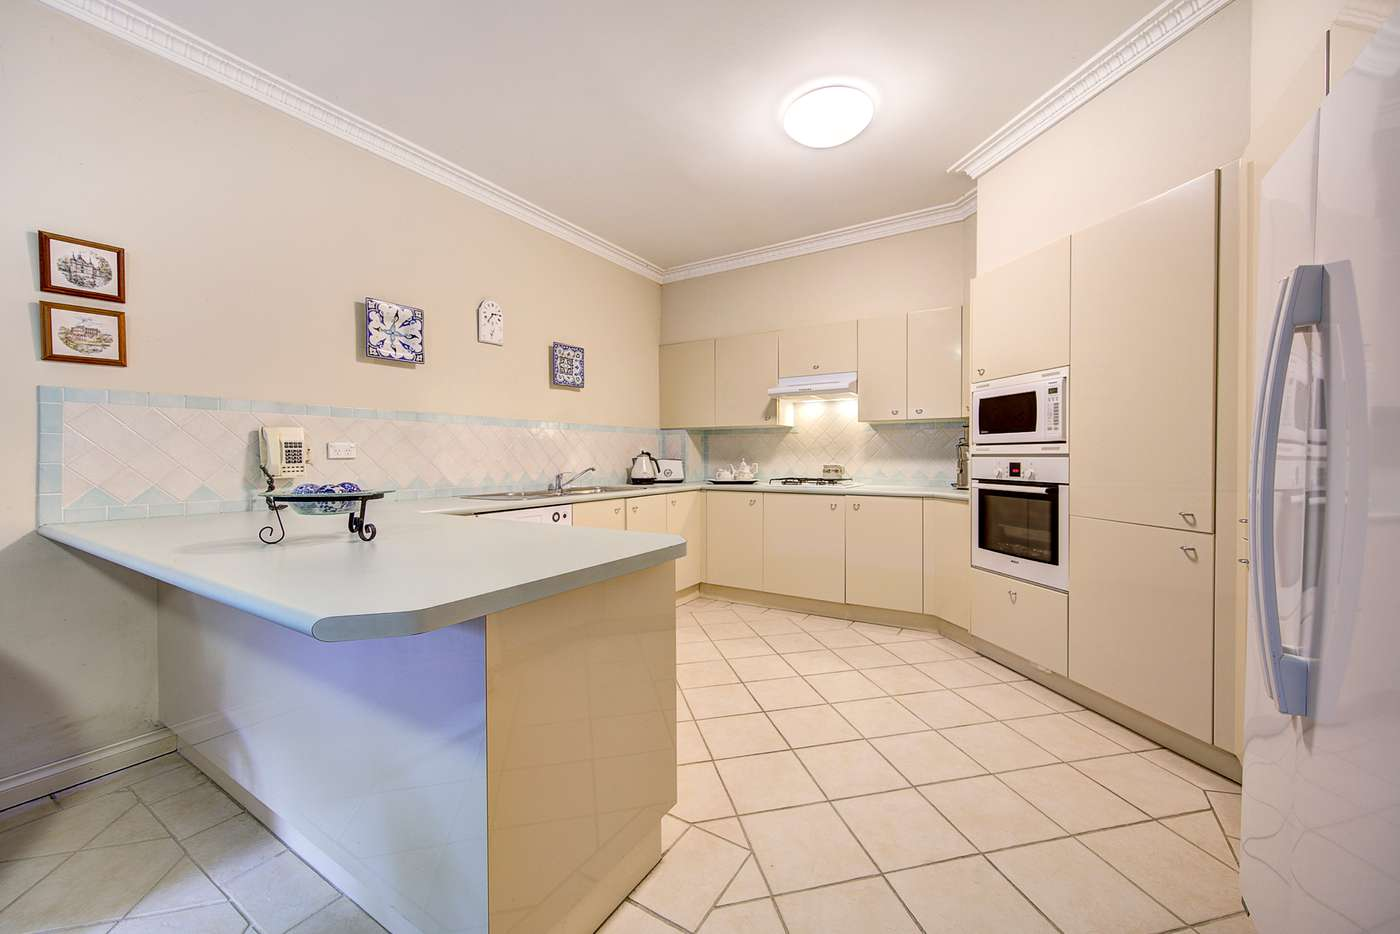 Fifth view of Homely apartment listing, 23/5 Gillott Way, St Ives NSW 2075